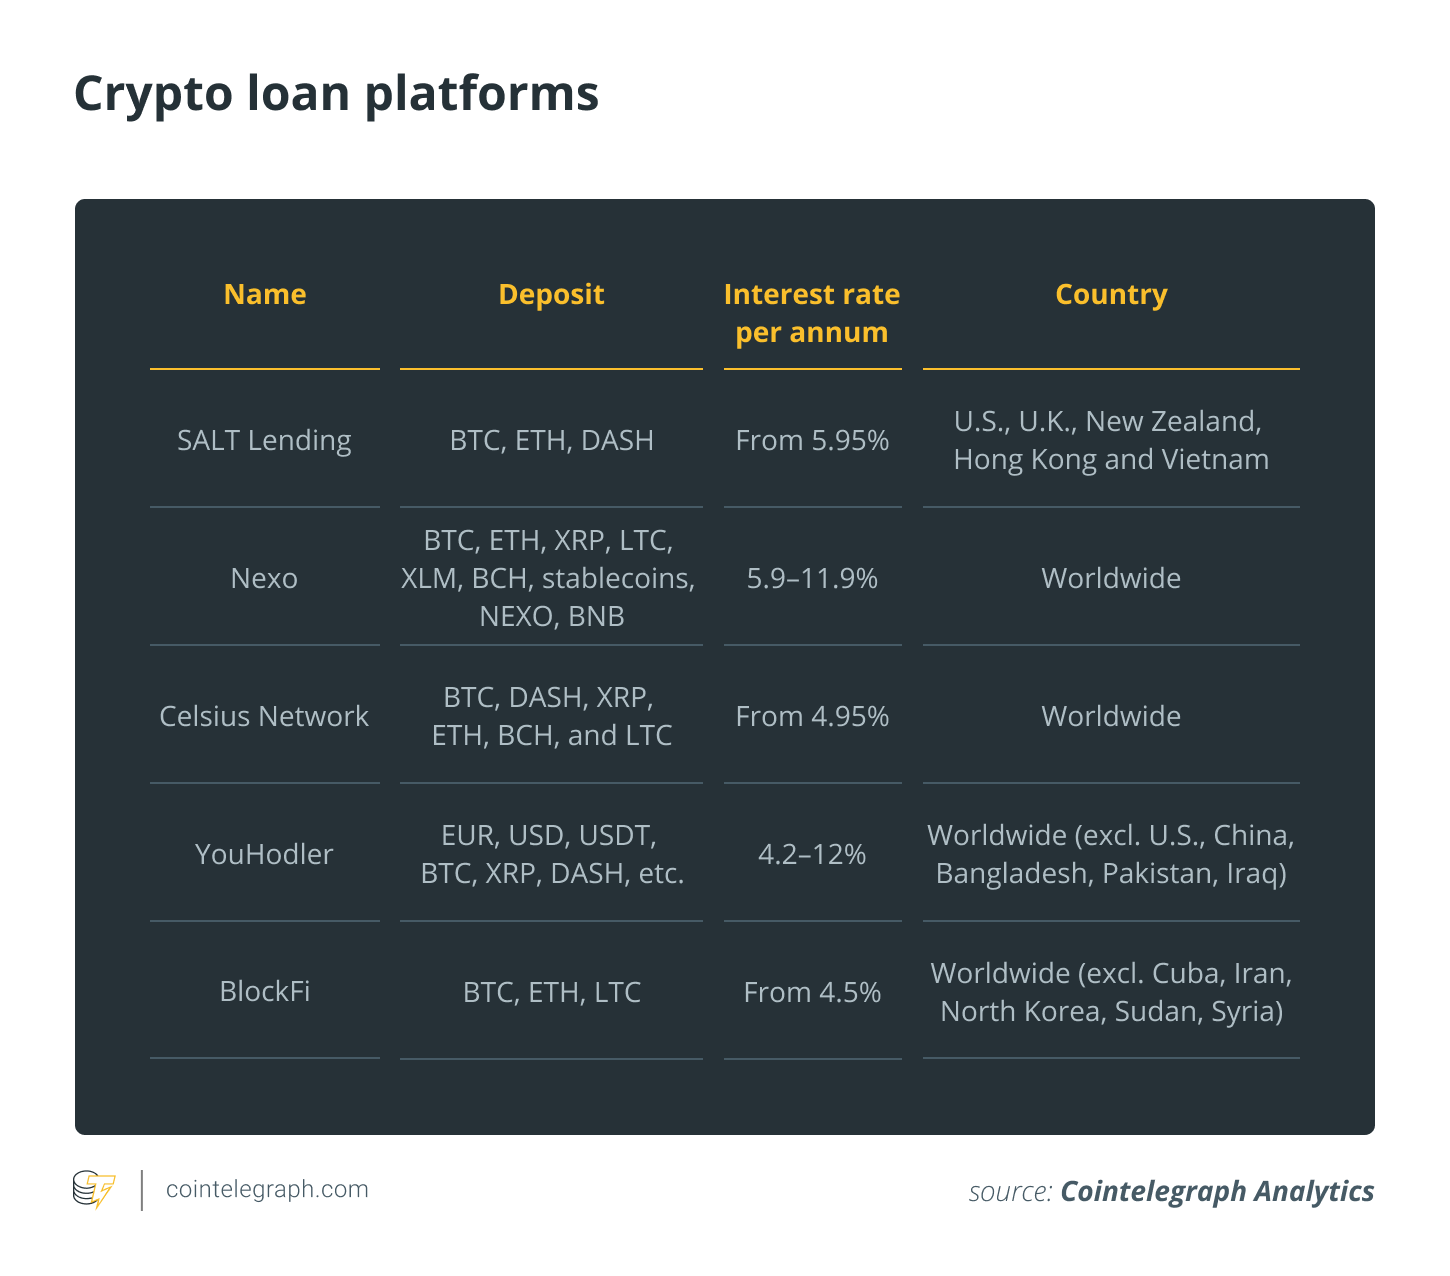 Crypto loan platforms